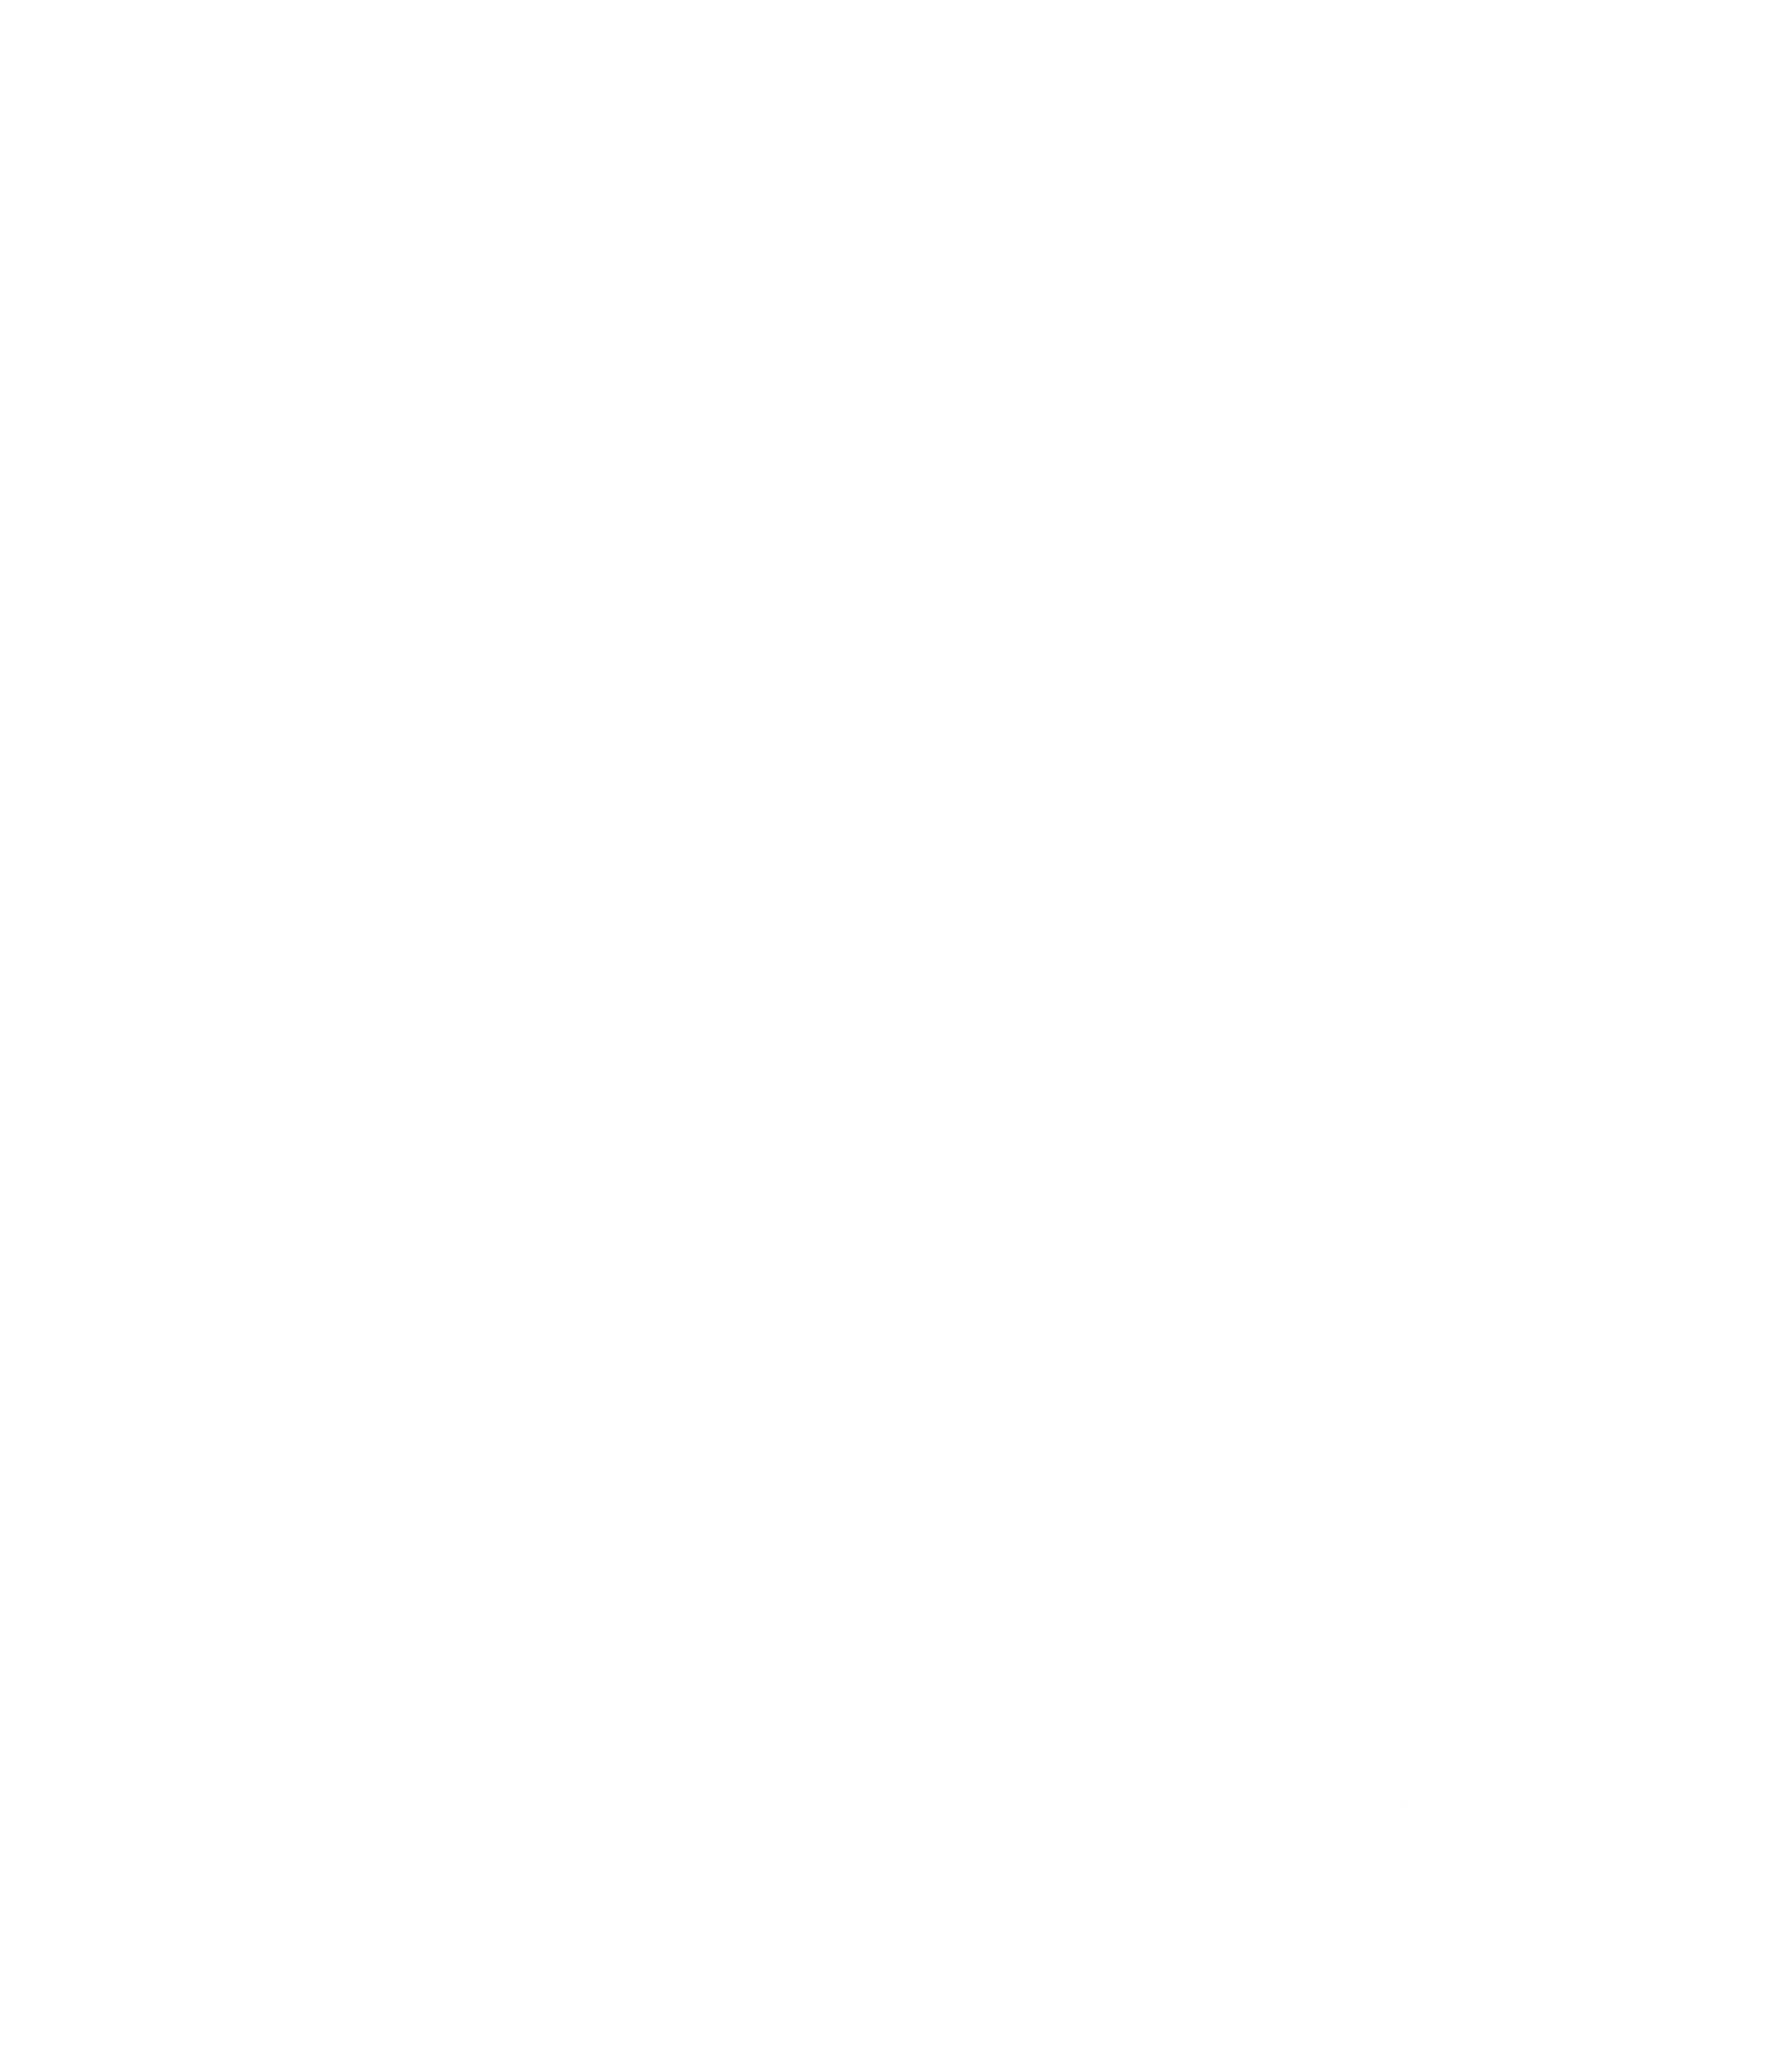 Arise_for t-shirt printing.png